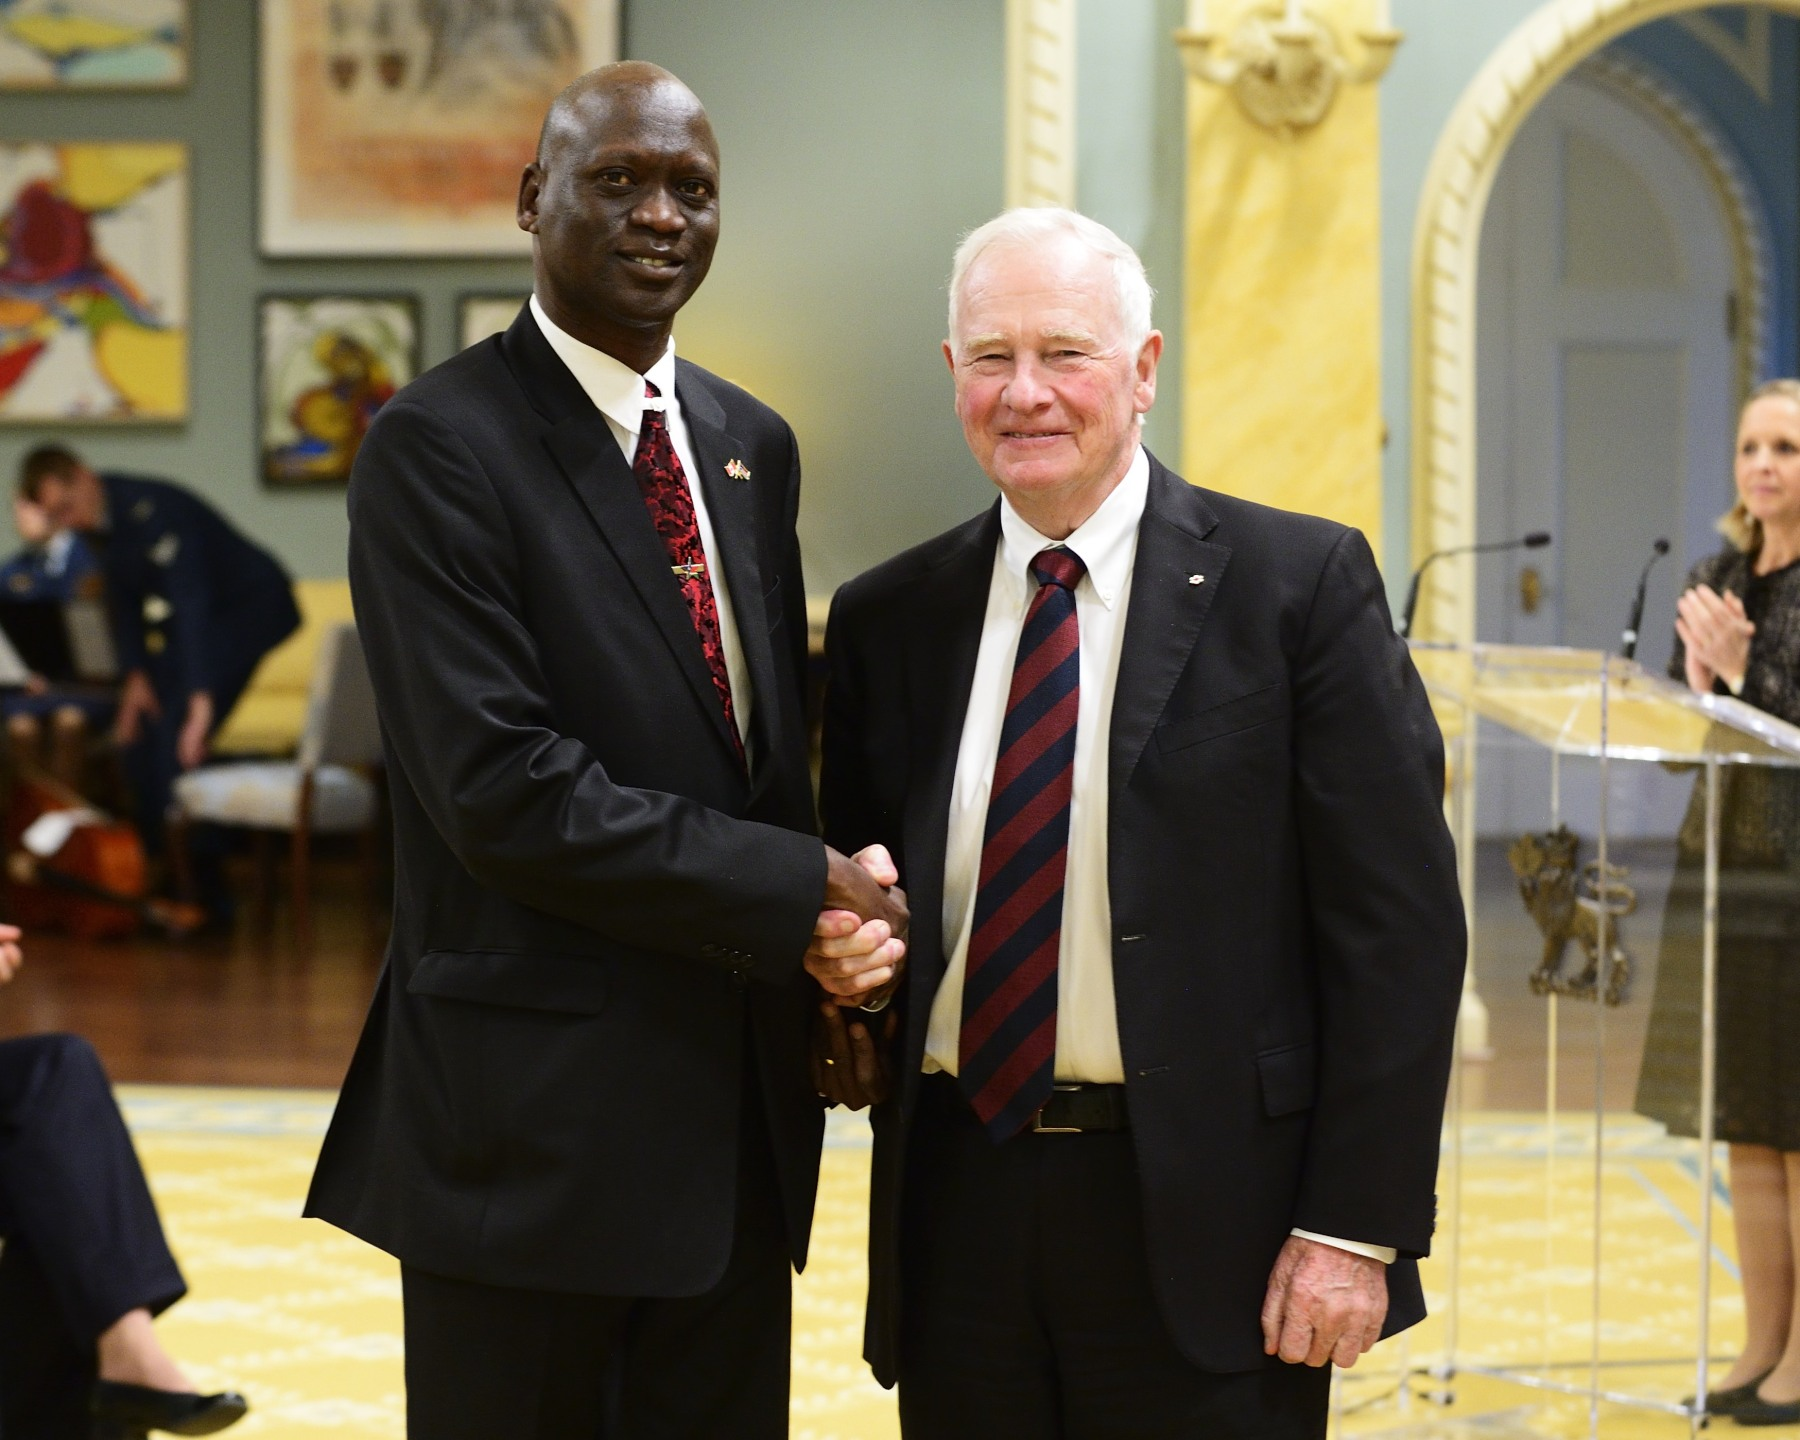 His Excellency Garang Diing Akuong, Ambassador of the Republic of South Sudan was the last one to present his letters of credence to the Governor General.